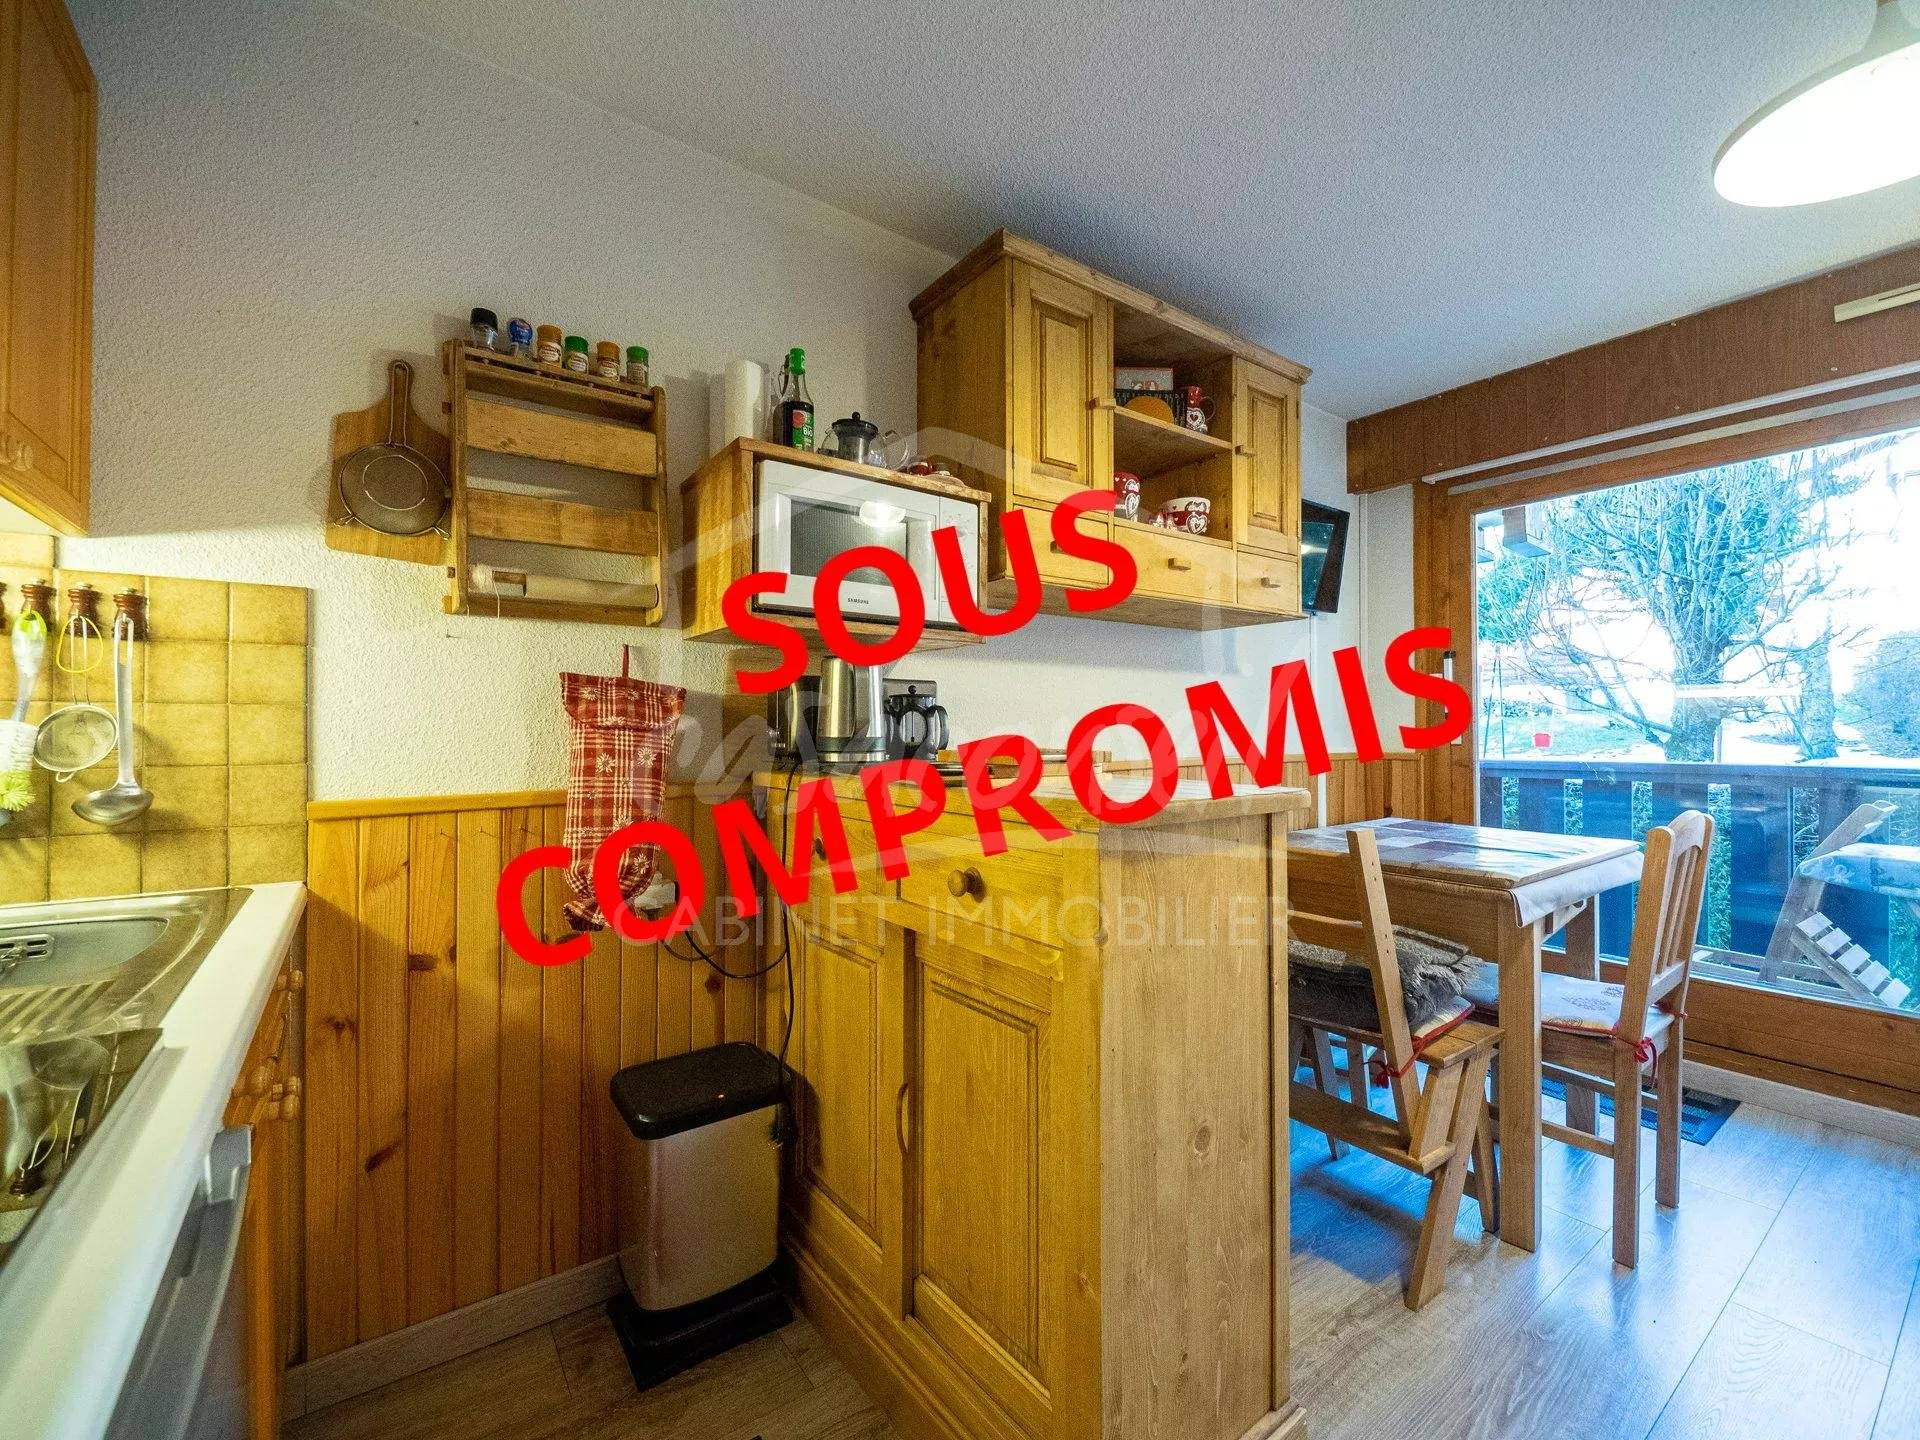 LES CONTAMINES MONTJOIE - Perfect position for this one bedroom apartment + bunks